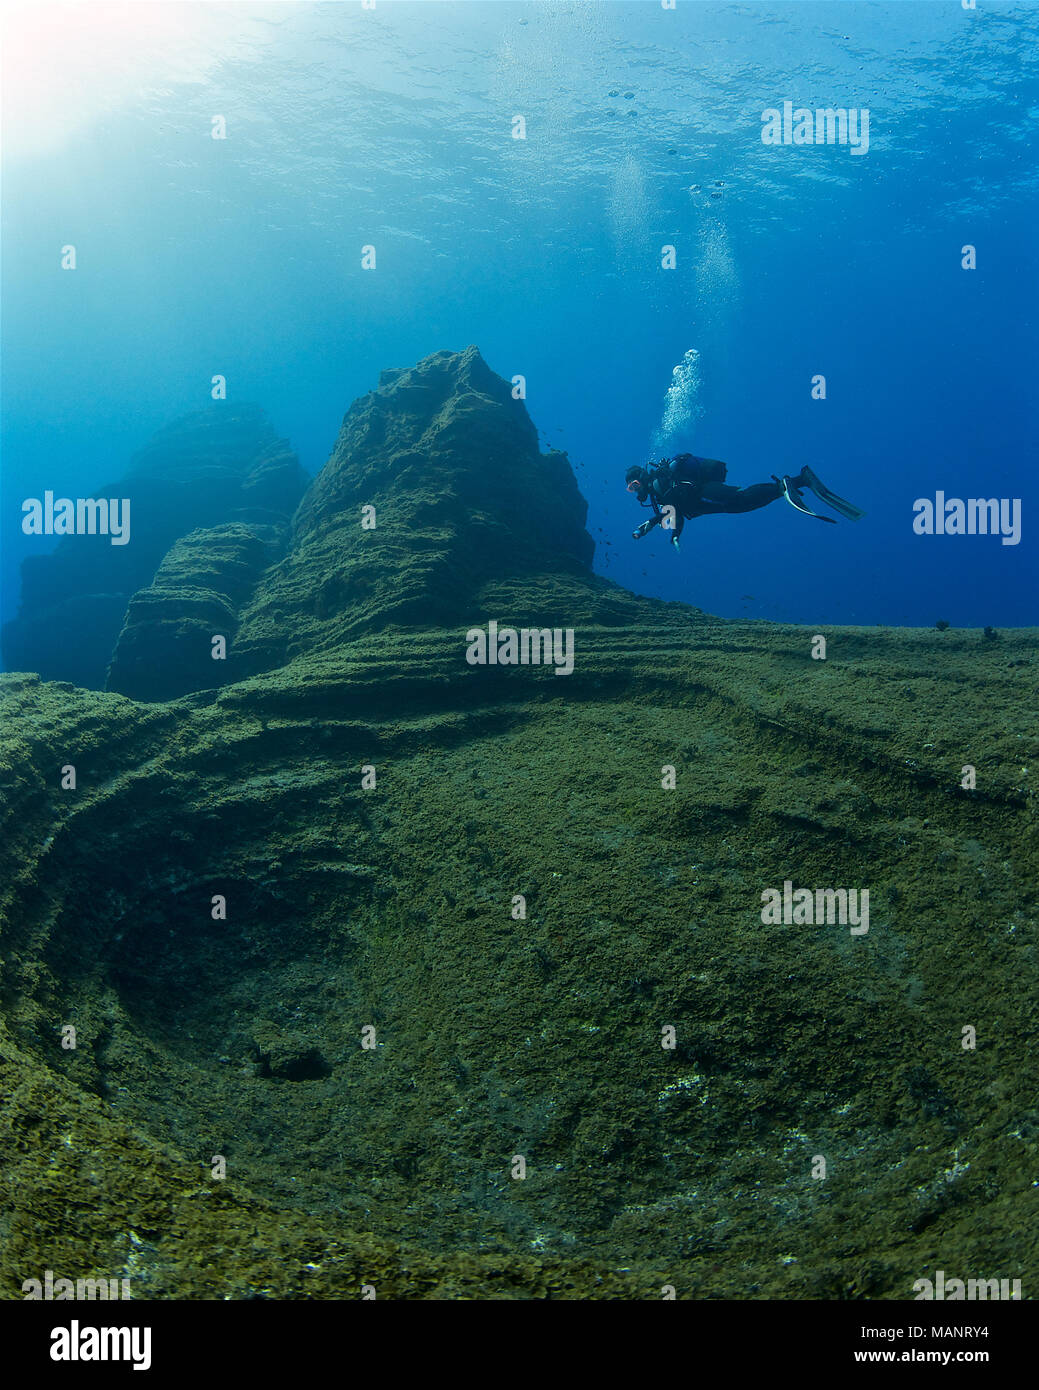 scuba-diver-at-el-bajn-dive-site-a-famou